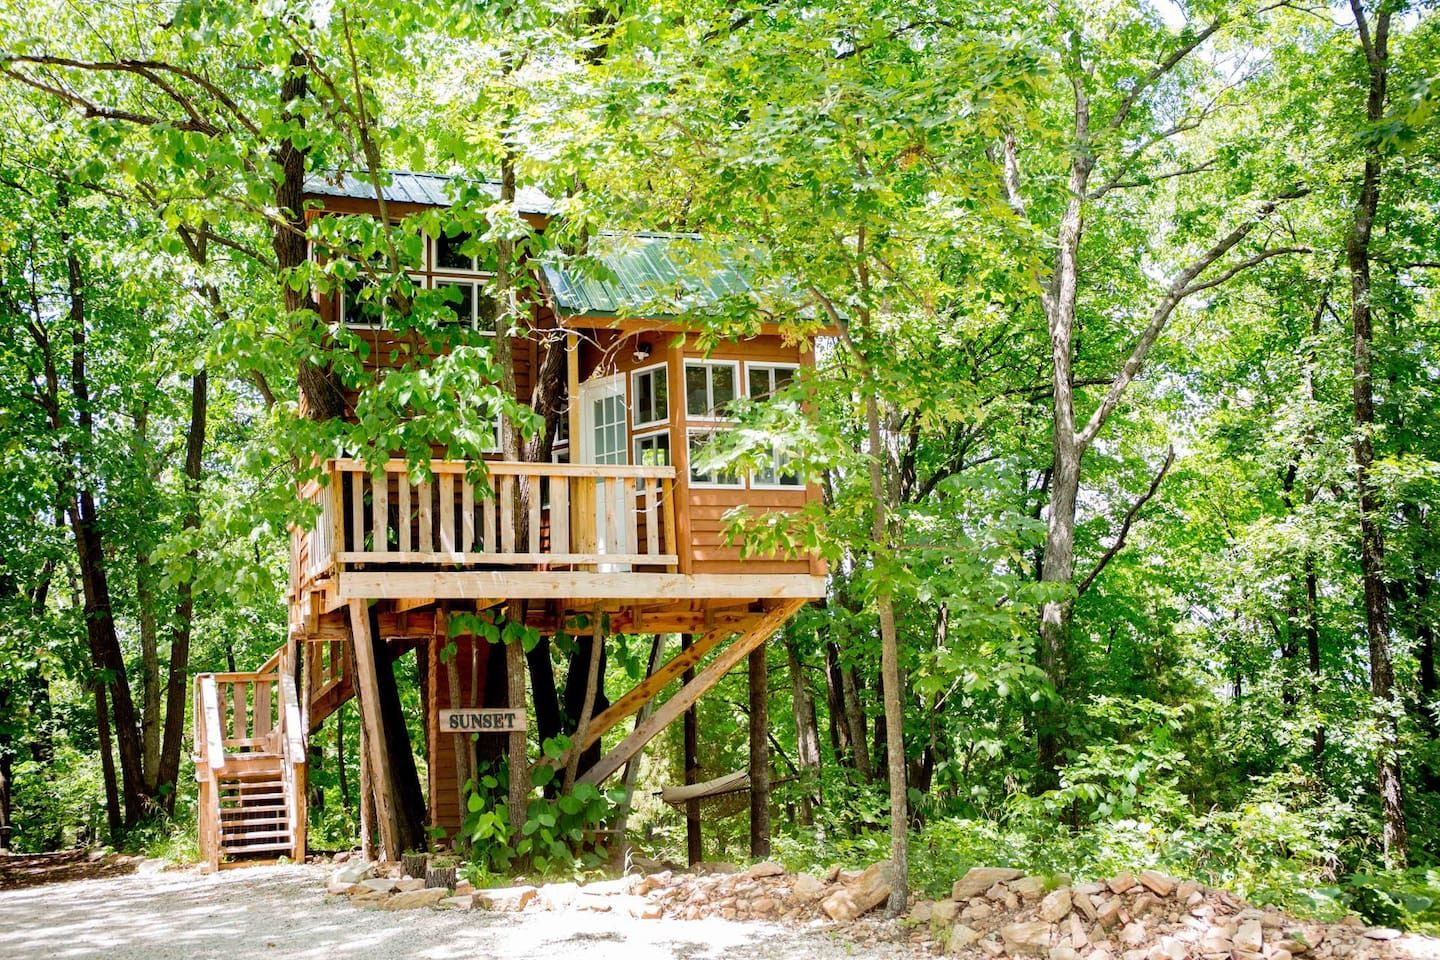 Sunset Tree House The Cottage Treehouses for Rent in